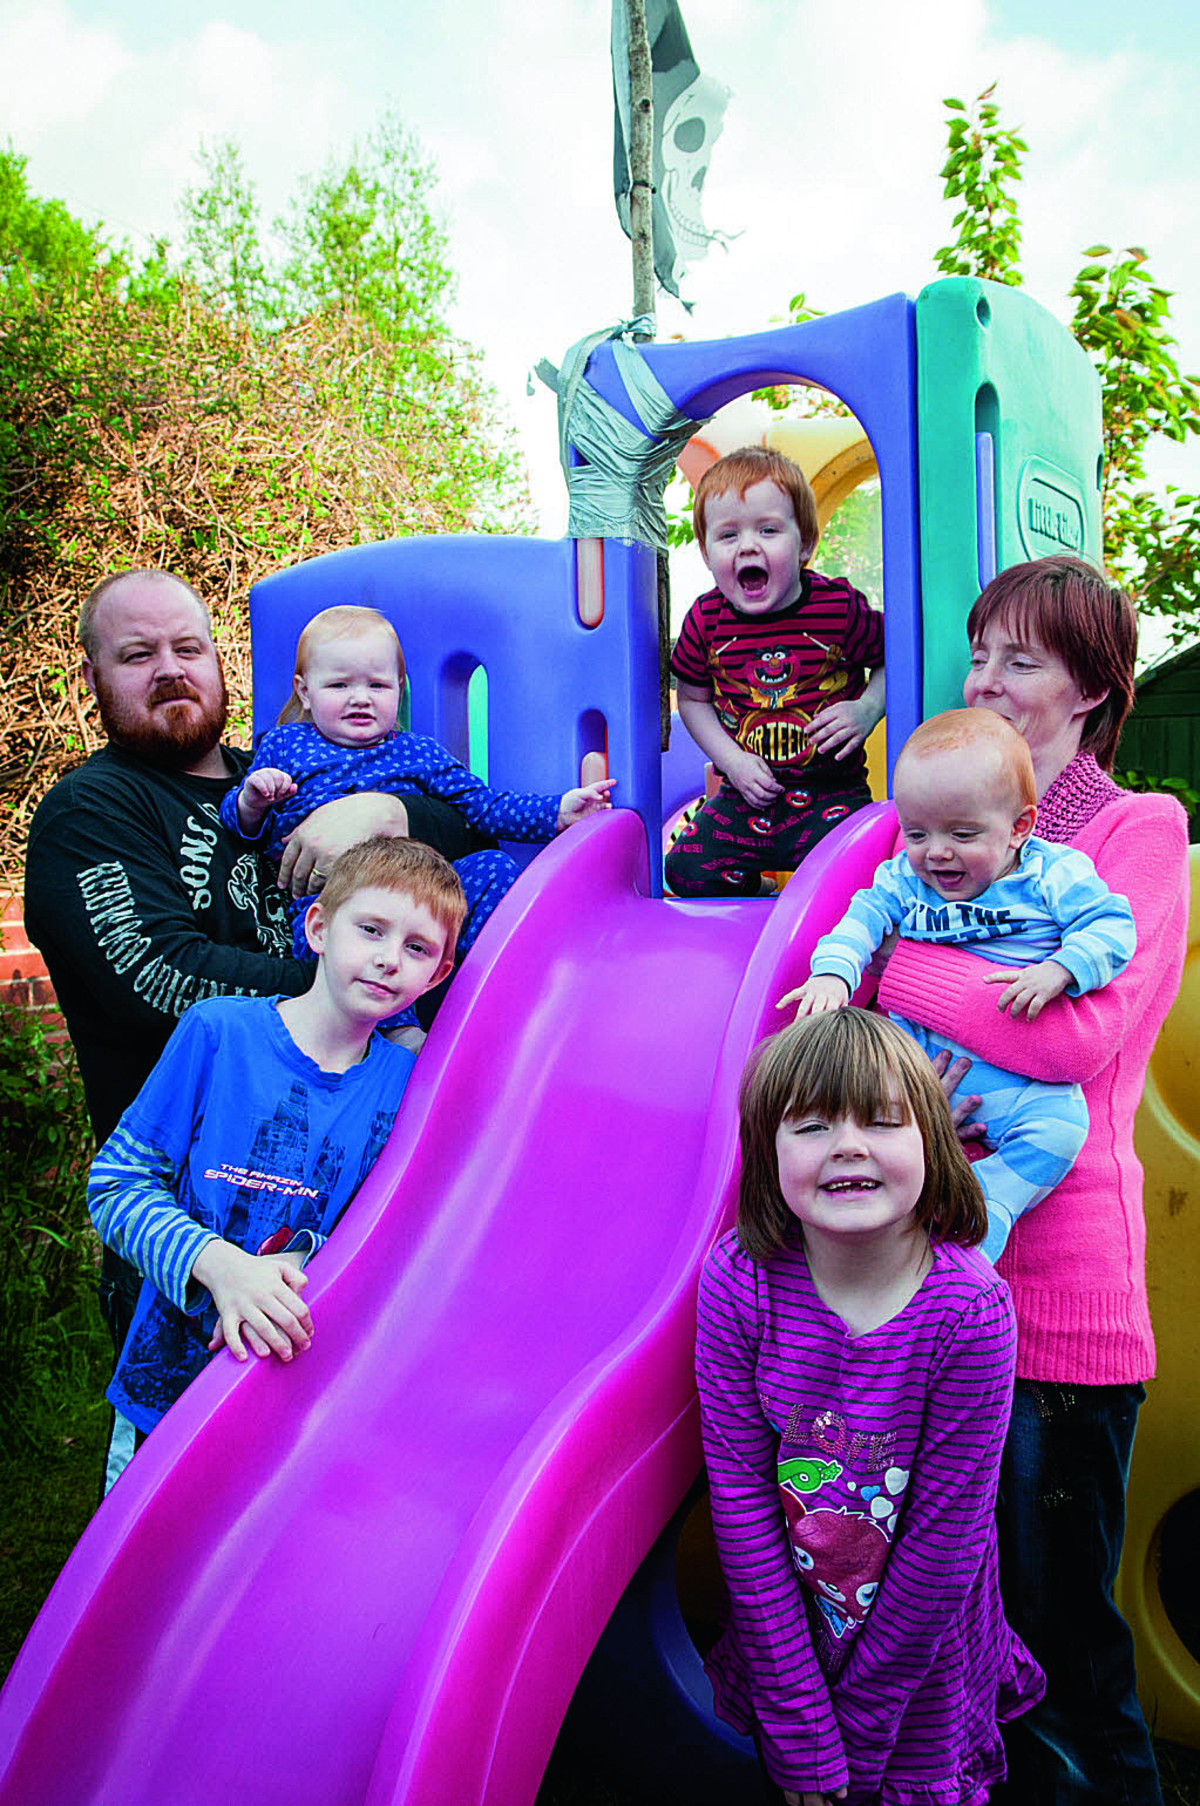 Thong Rangers help Didcot family, Jodie and Kevin Frankum and their five children. Left, Kevin holding 19-month old Kacey, with Brendon, eight. Centre, Tye, two. Right, Jodie with Leah, seven, and Tommy, 10 Months